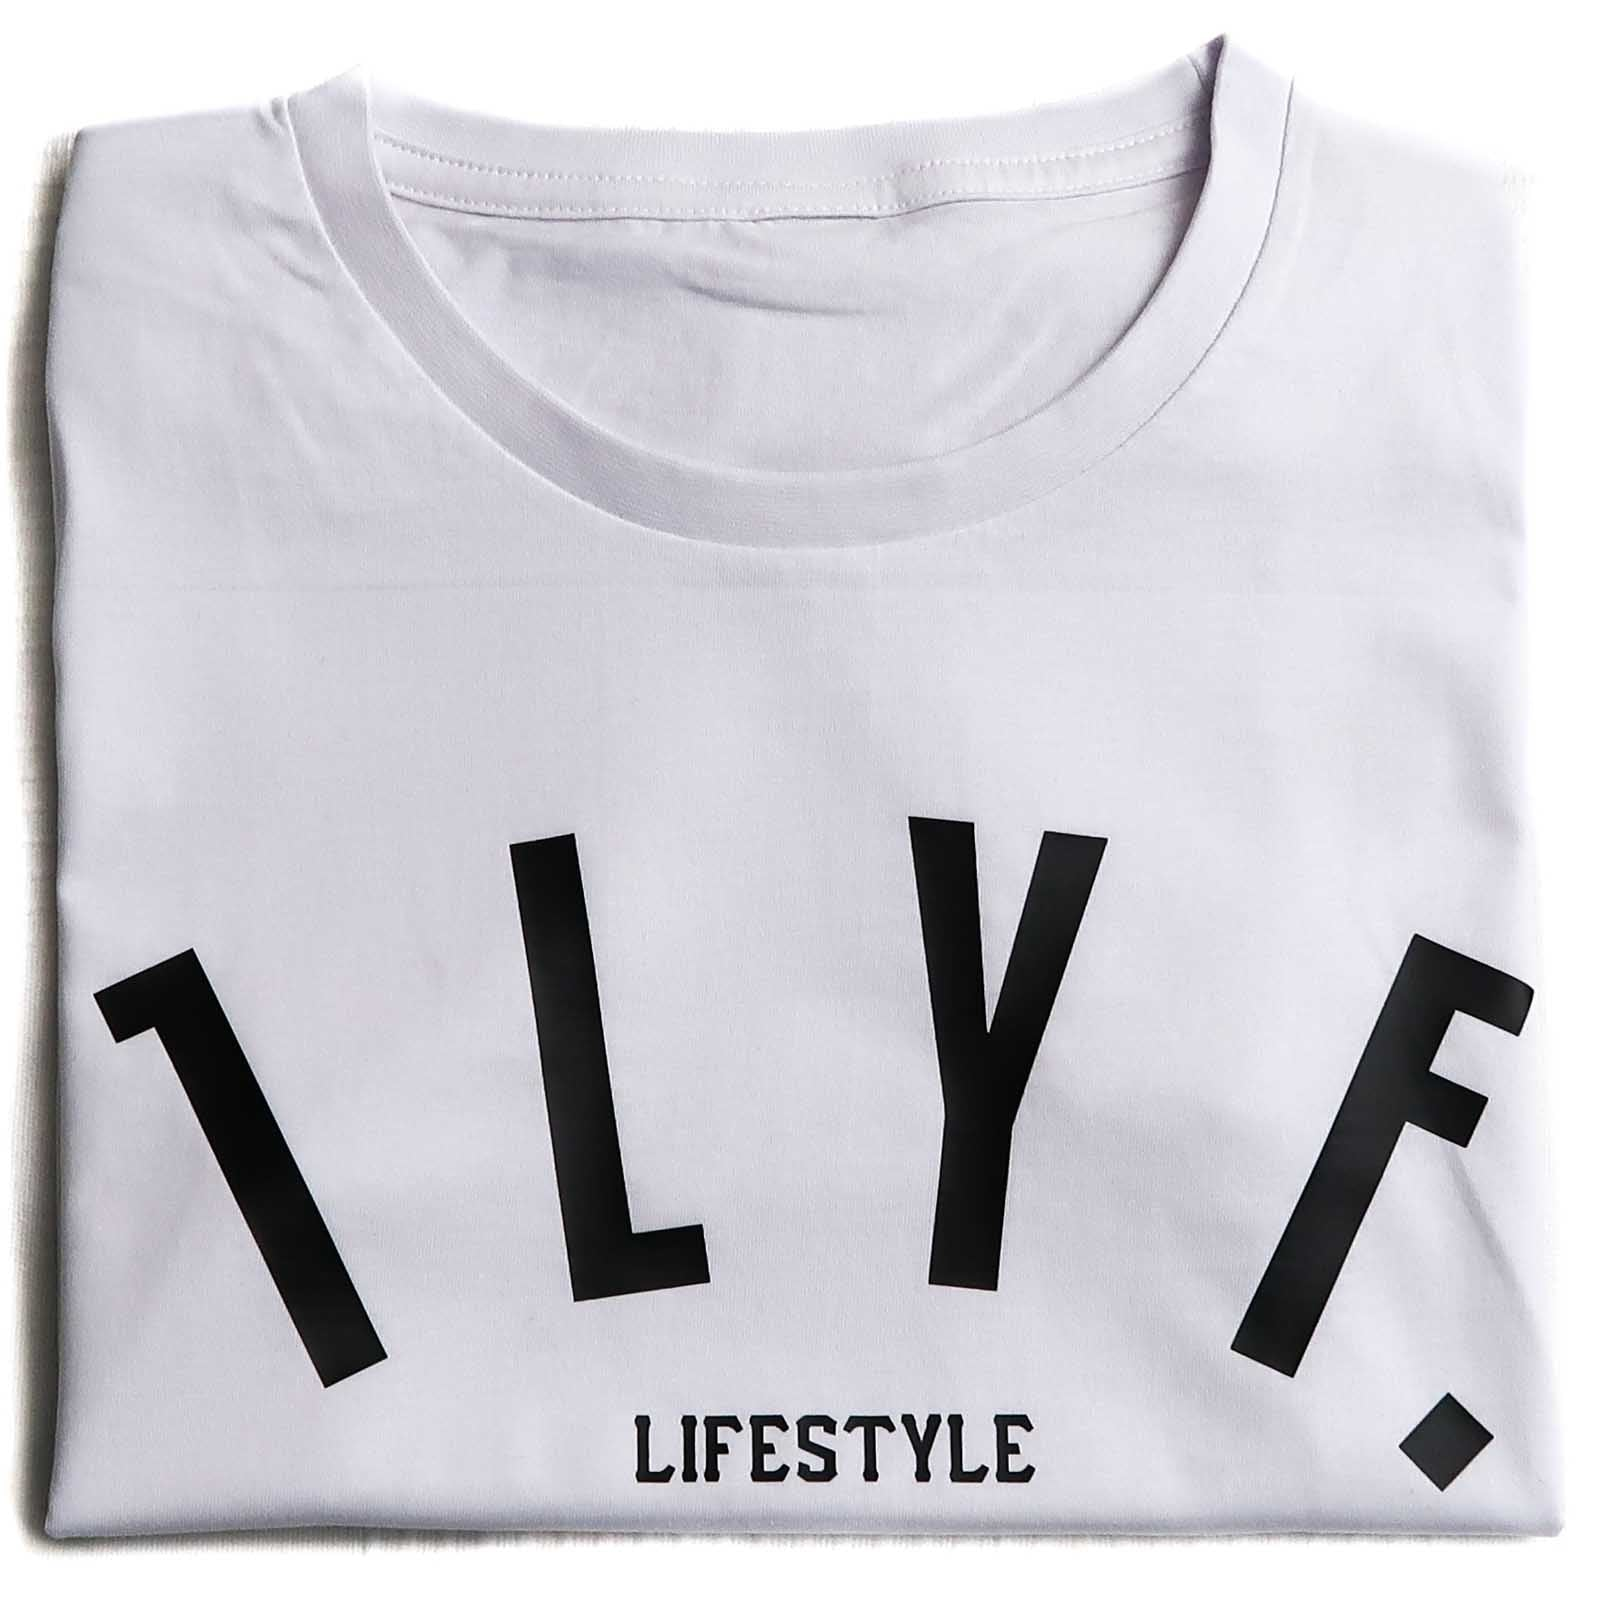 Womens LifeStyle White T-shirt